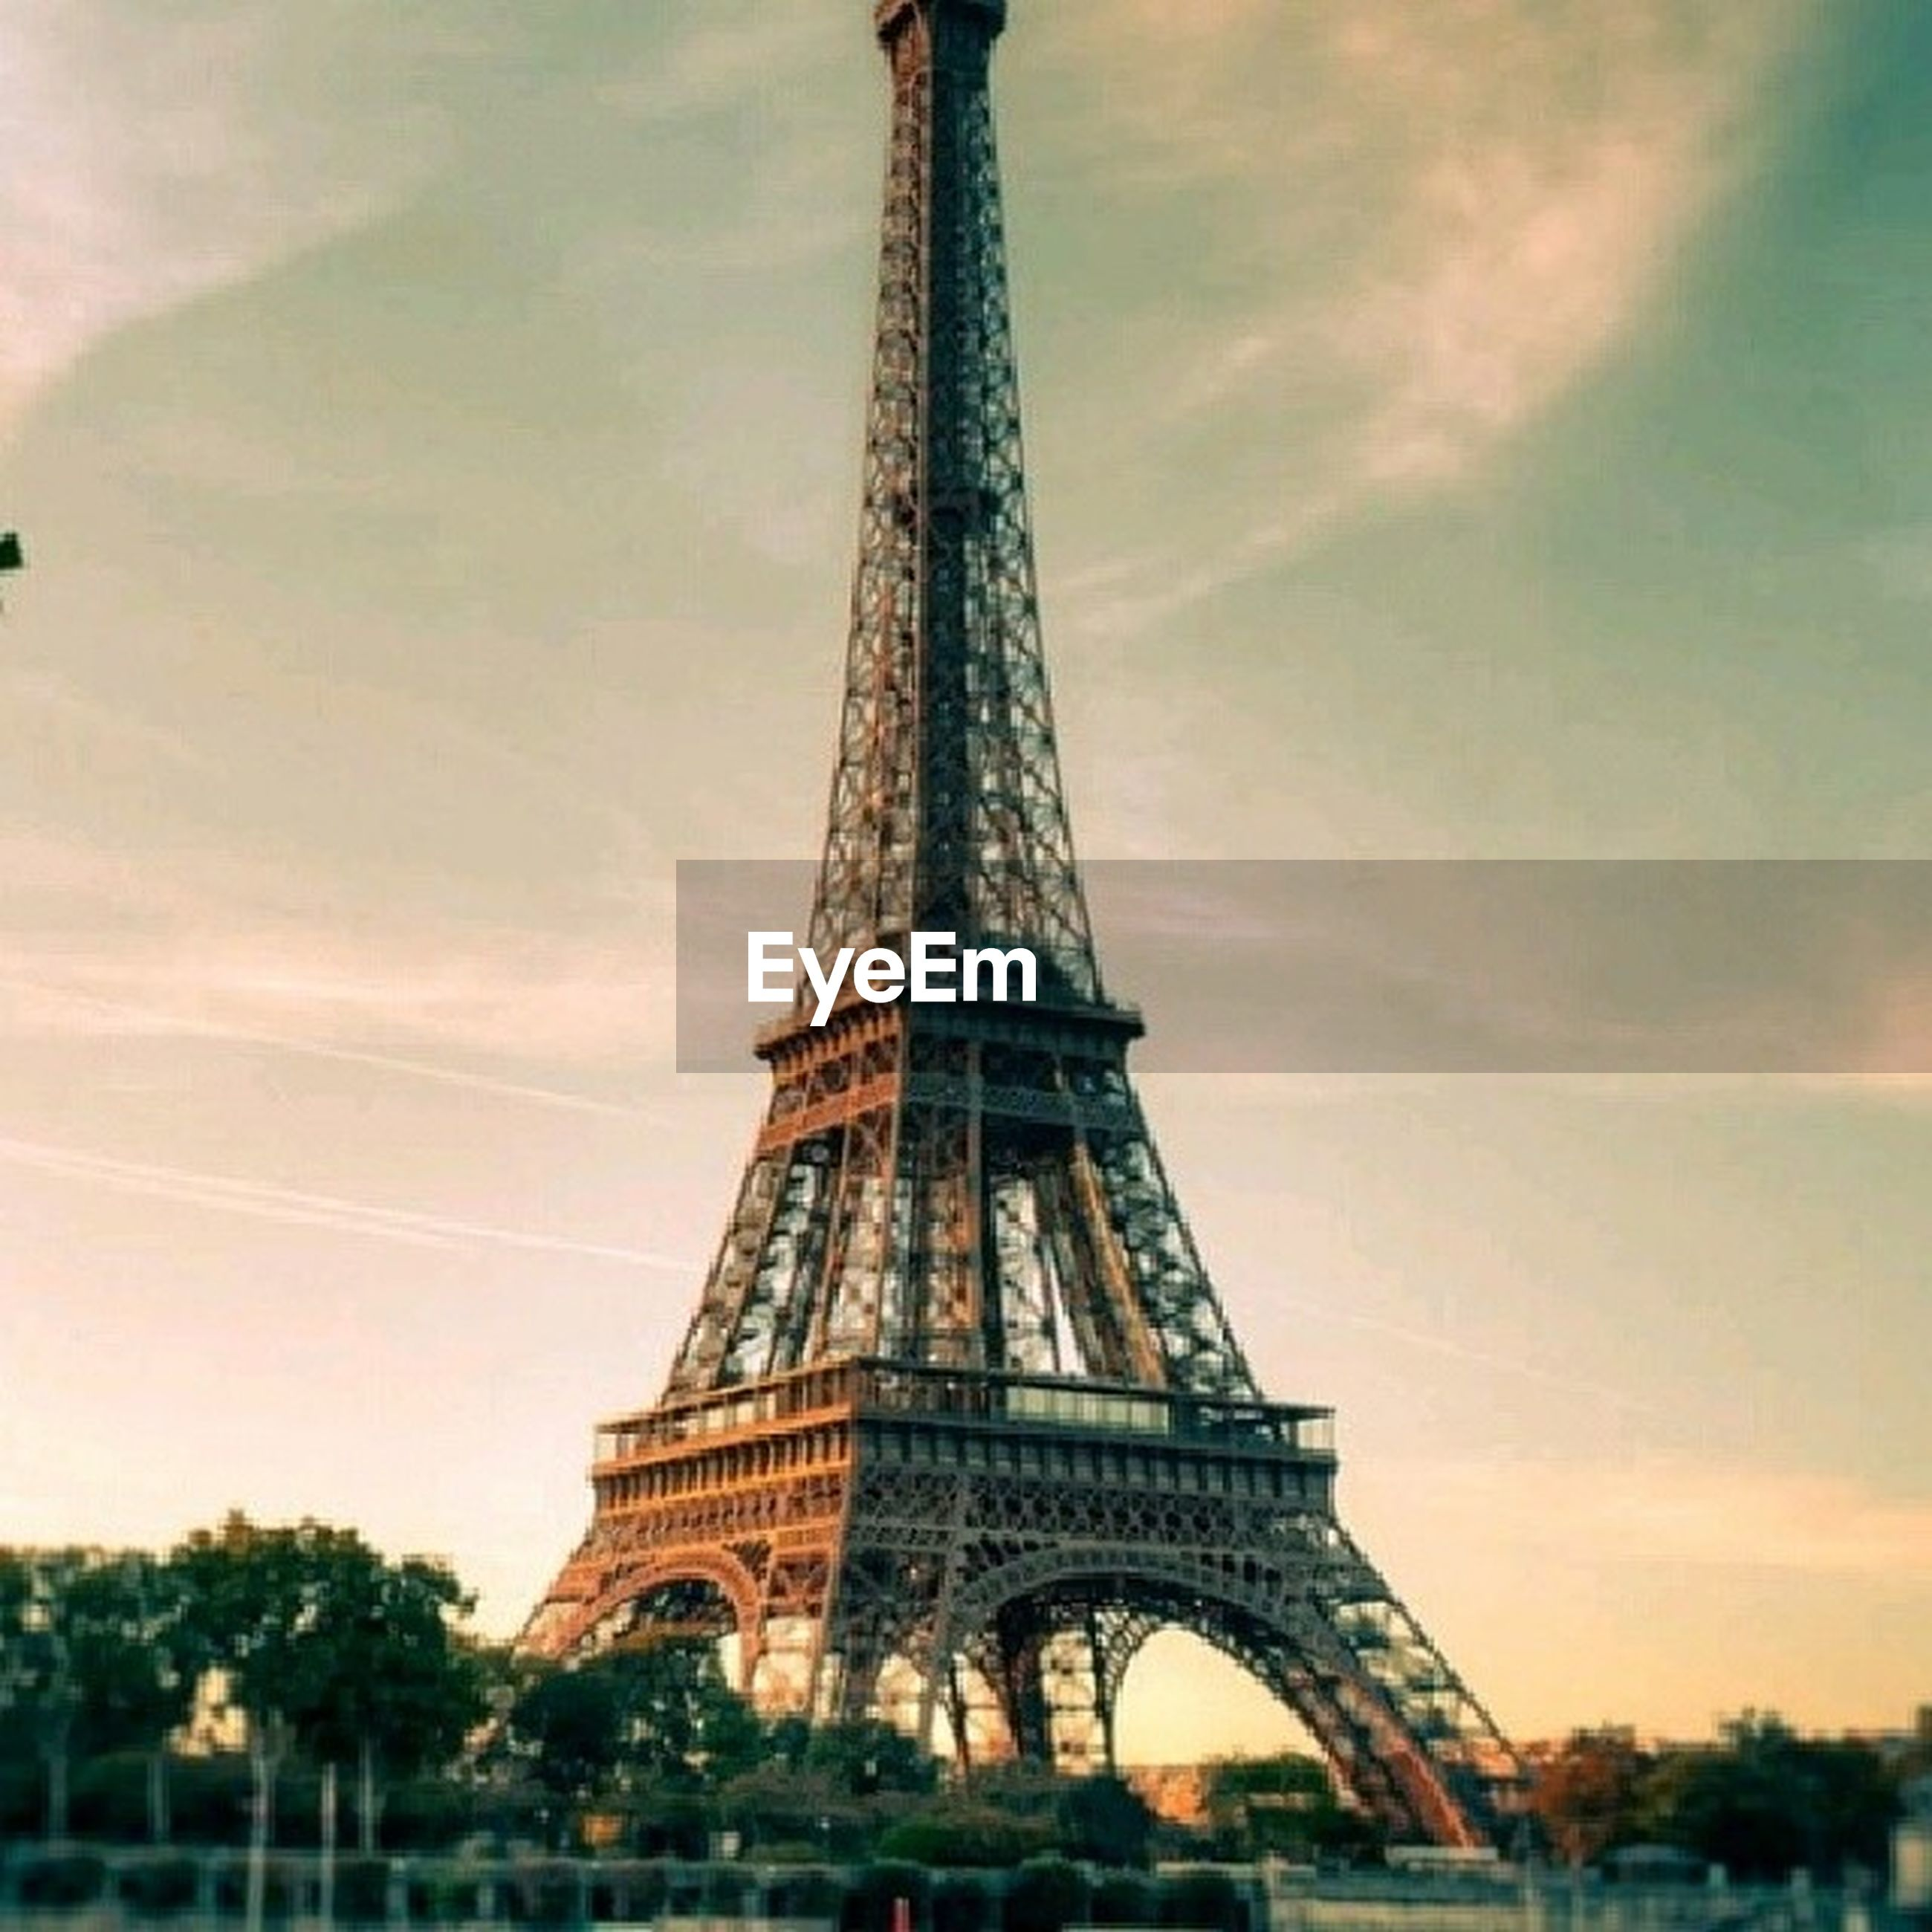 eiffel tower, architecture, famous place, international landmark, built structure, travel destinations, tourism, capital cities, sky, travel, tower, culture, tall - high, metal, history, low angle view, cloud - sky, architectural feature, city, tree